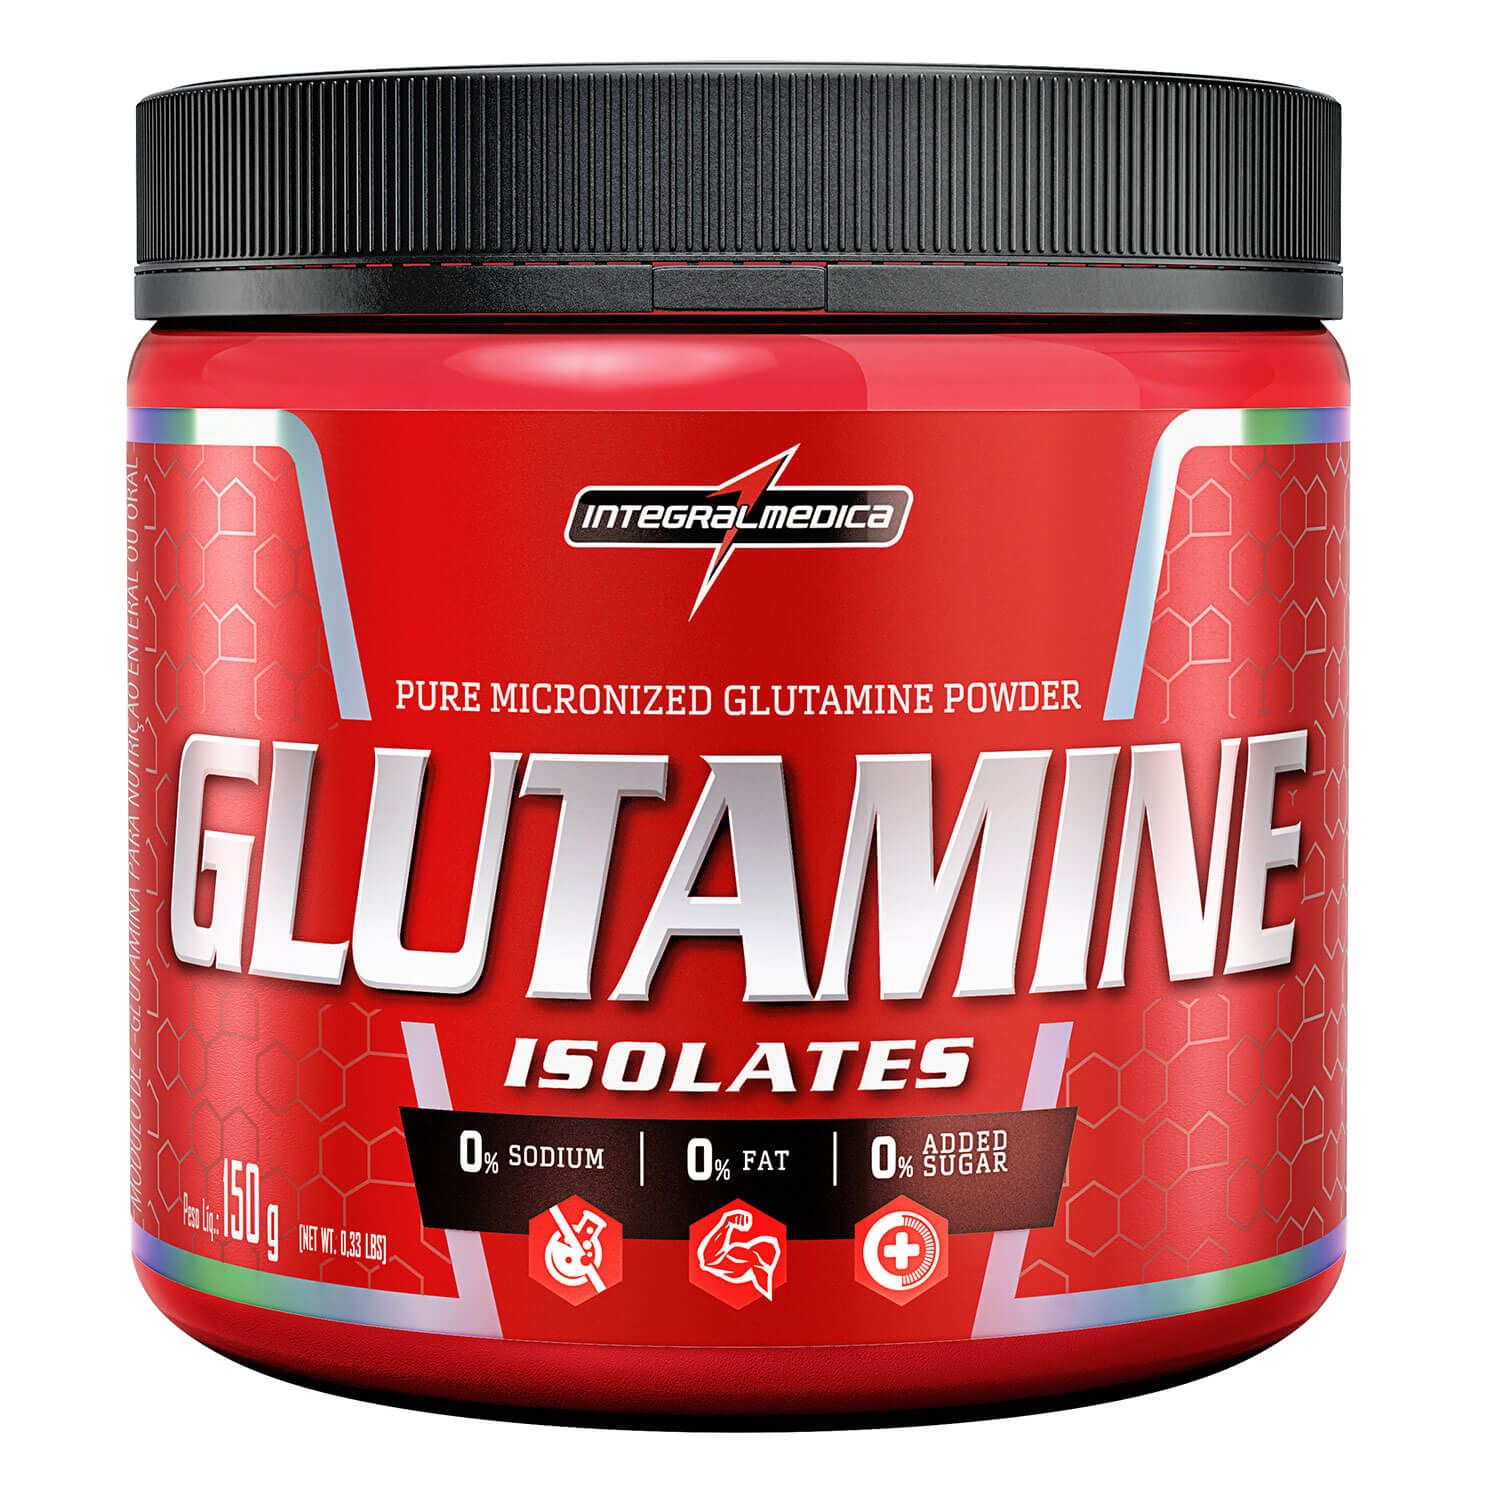 Glutamine Isolates (150g)